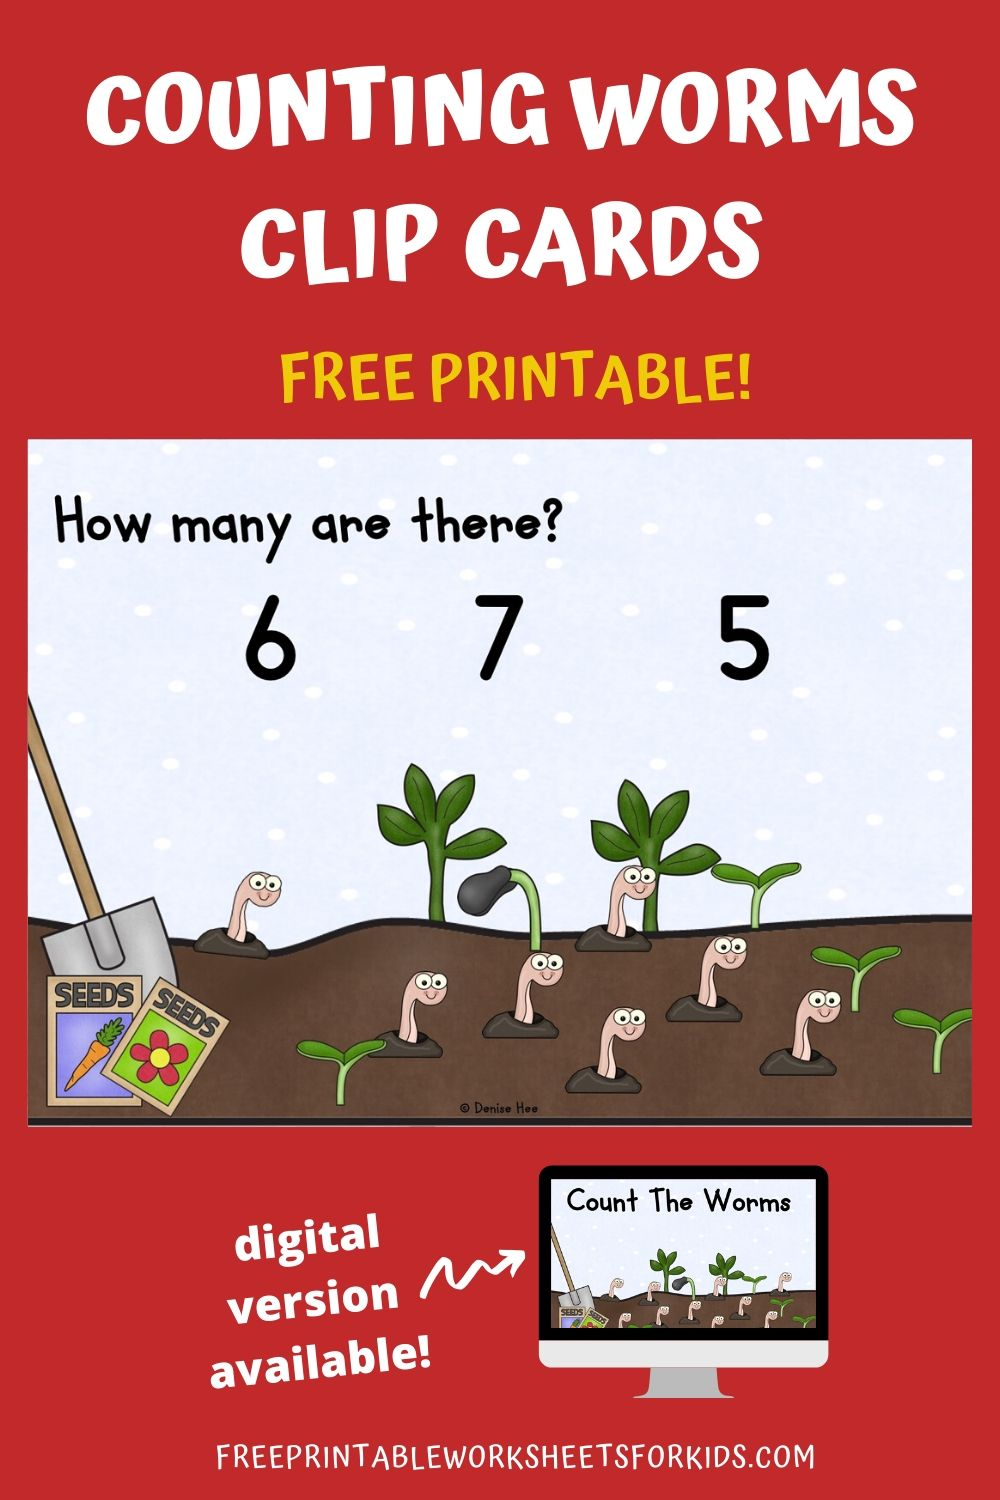 Count The Worms 1-10 | Free Printable Worksheets For Kids | Kids will love counting how many adorable wriggly worms are coming up from the ground. Practice early math skills while strengthening fine motor muscles with this set of clip cards that are perfect for Spring.